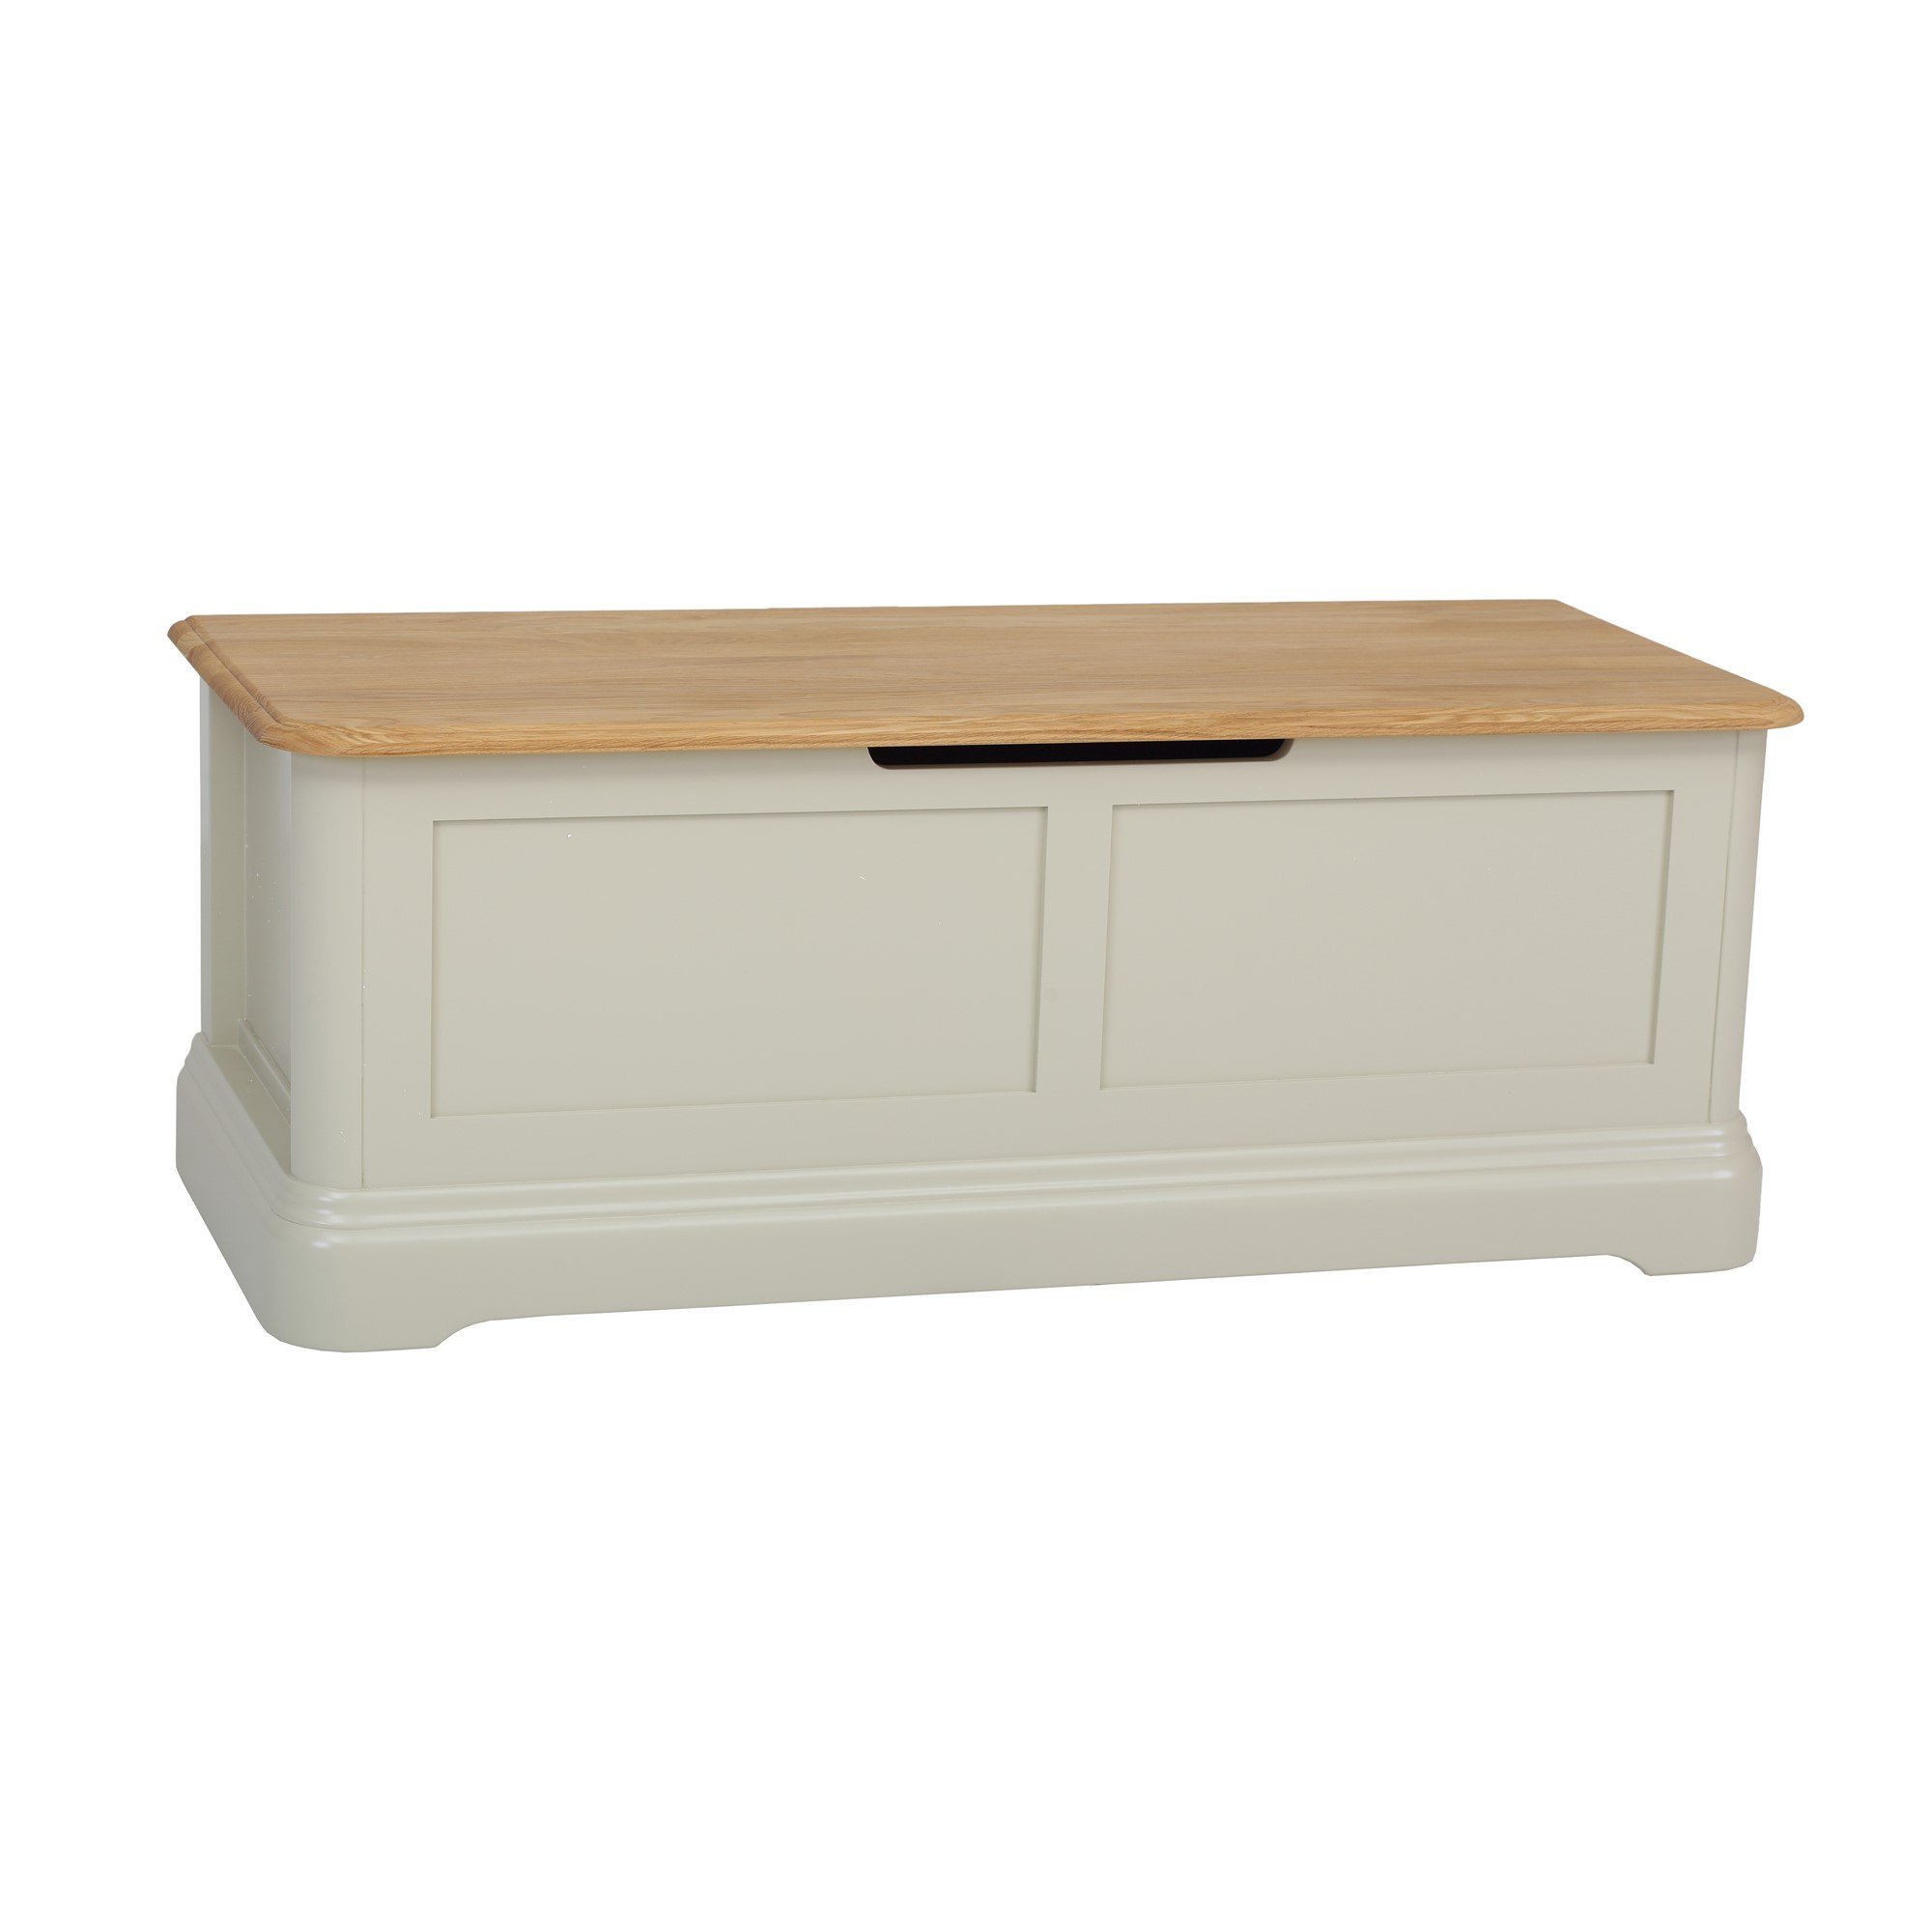 Cromwell Blanket Chest